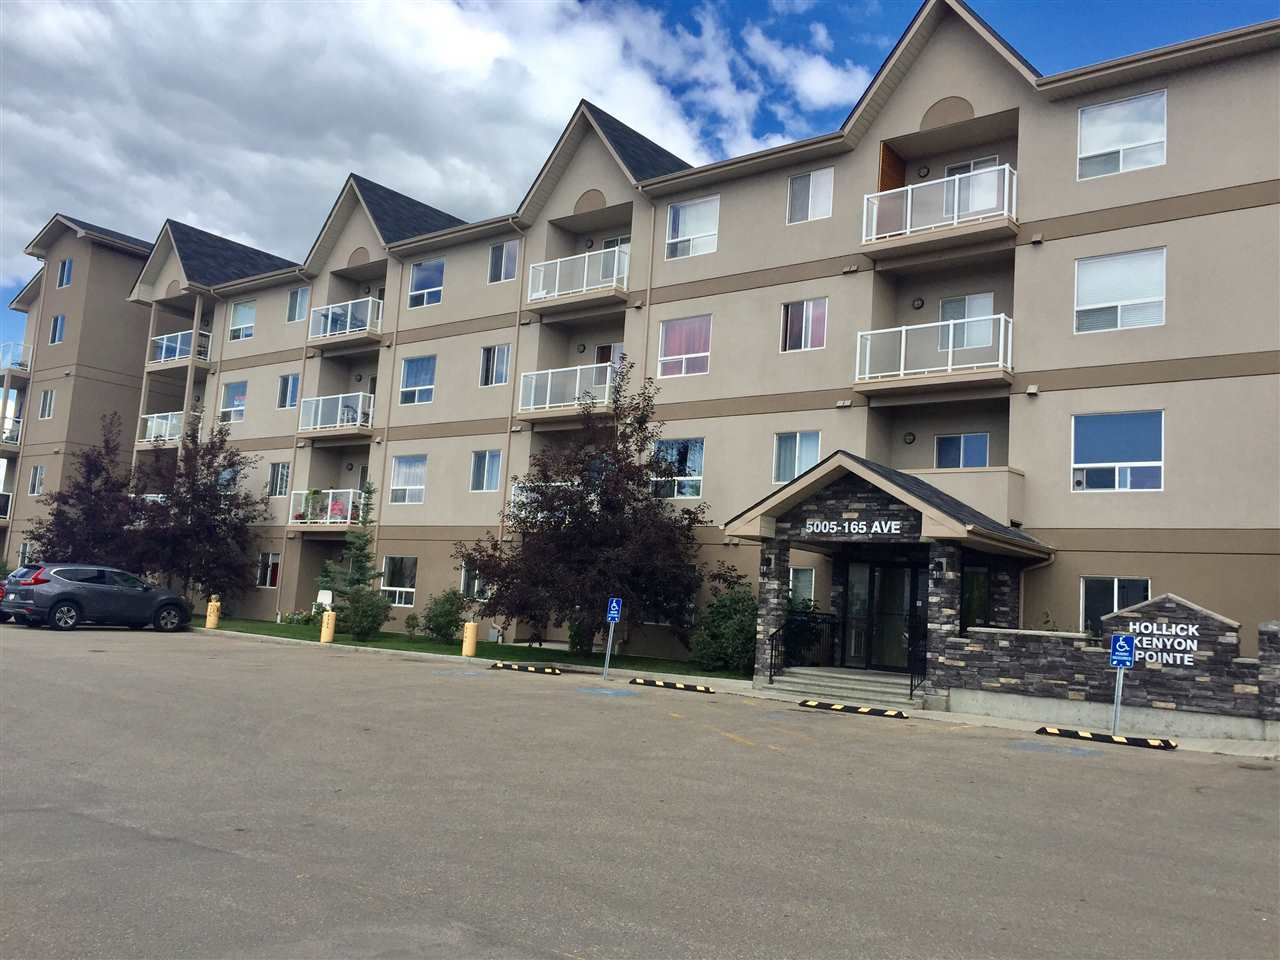 This 2nd Floor South Facing unit has 2 BDRMS. + 2 BATHS + 2 PARKING STALLS (1 assigned & 1 titled).  Just over 800 Sq. Ft. and featuring insuite laundry, a large kitchen and living room with brand new laminate flooring.  The master bedroom has brand new carpet and paint and features a large walk-in closet and 4 piece ensuite.  The second bedroom and 4 piece guest bath is conveniently separated by the living room for added privacy.  Glass railing balcony is just off the living room and looks out on a treed walking path.  Building has plenty of visitor parking as well as exercise and social/party room.  Many walkable amenities very close by incl.; banks, grocery, restaurants etc.  5 min. drive to Henday or Clareview LRT station.